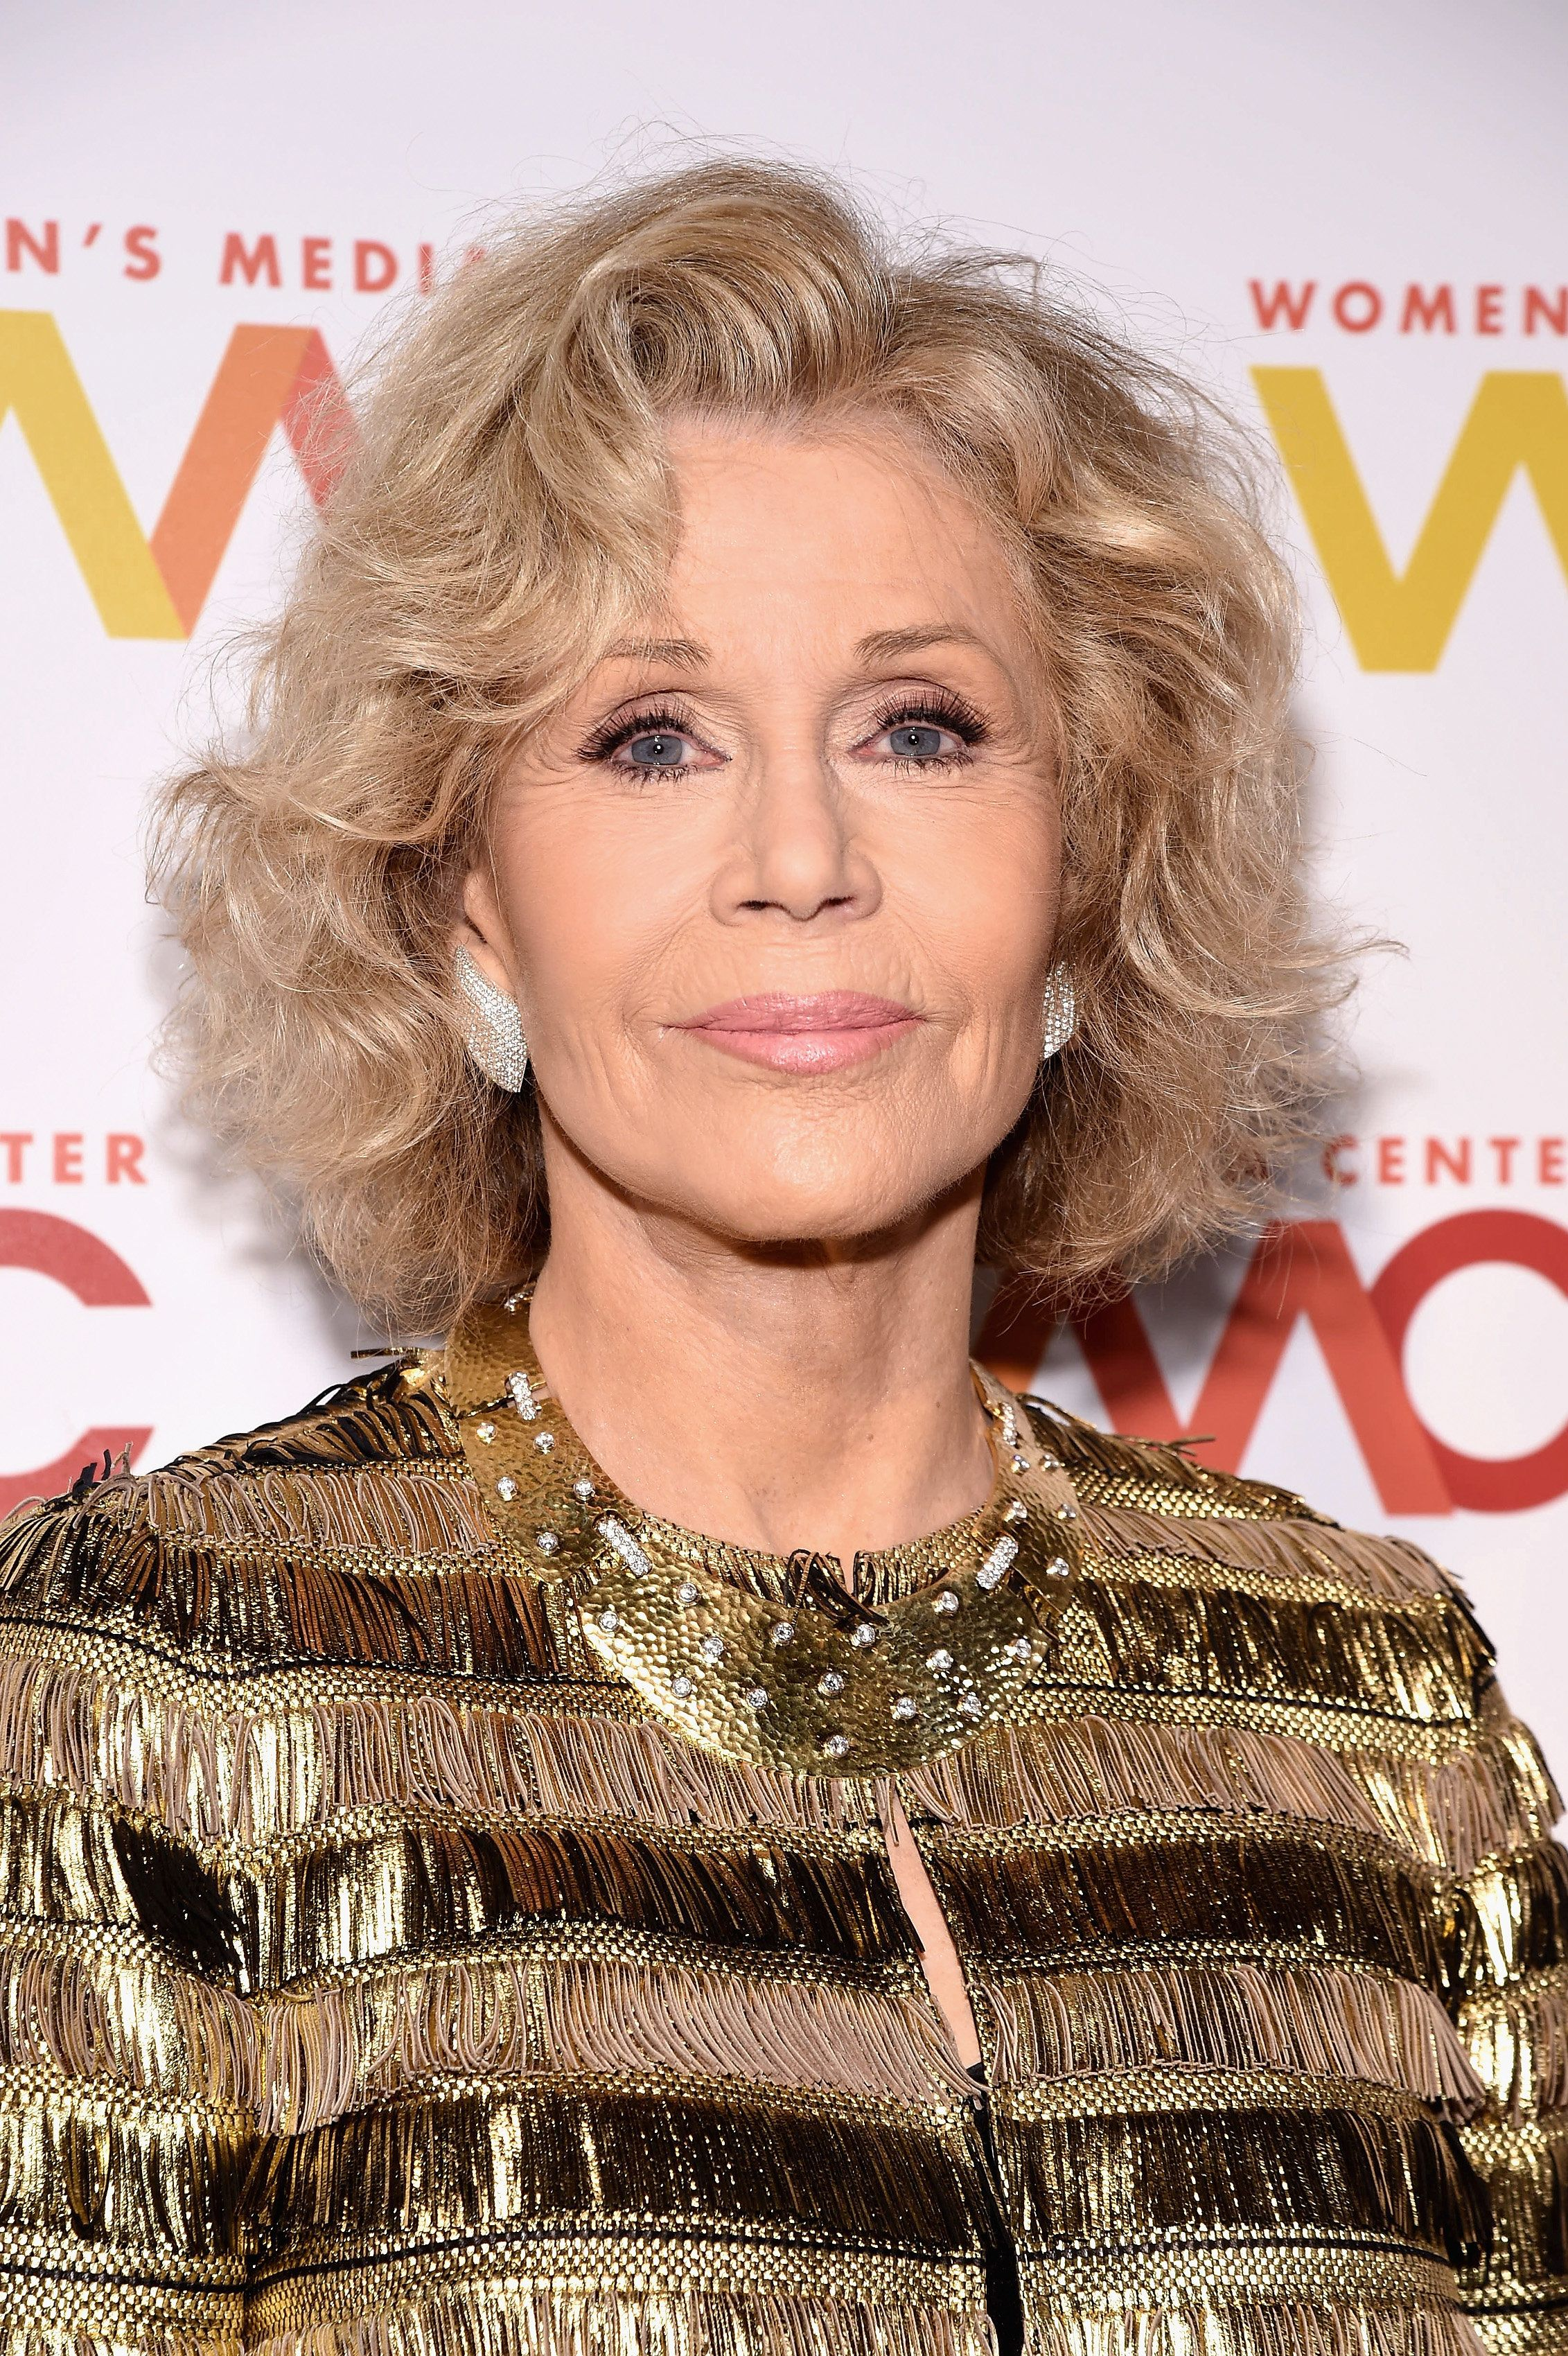 """Talking to reporters at the Women's Media Awards, Jane Fonda said that U.S. democracy is """"fragile and under attack."""""""